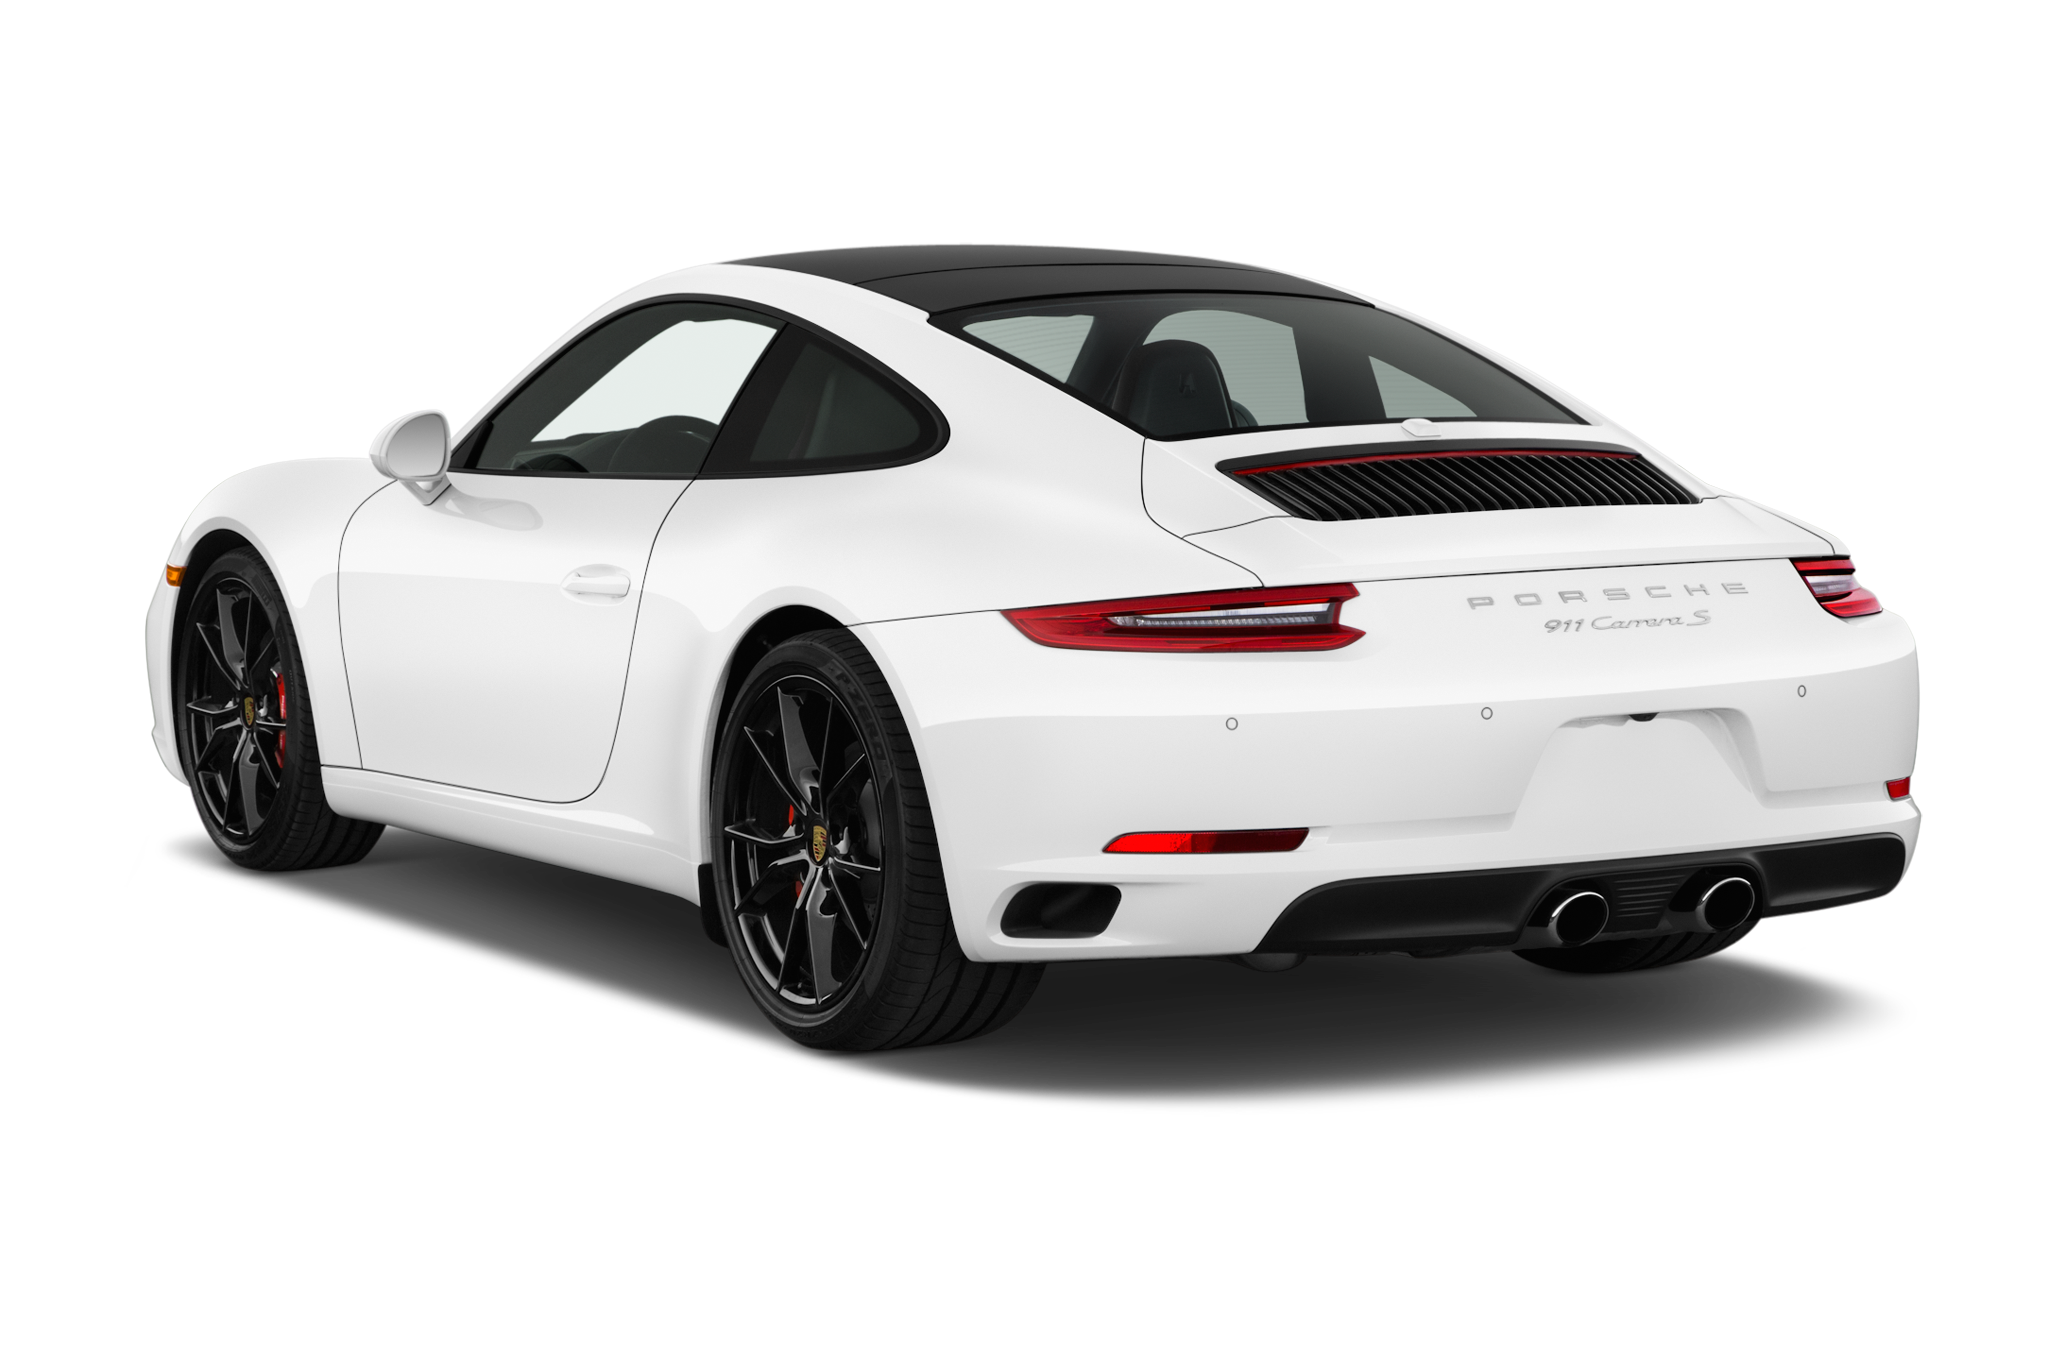 porsche 911 3.2 carrera buying guide